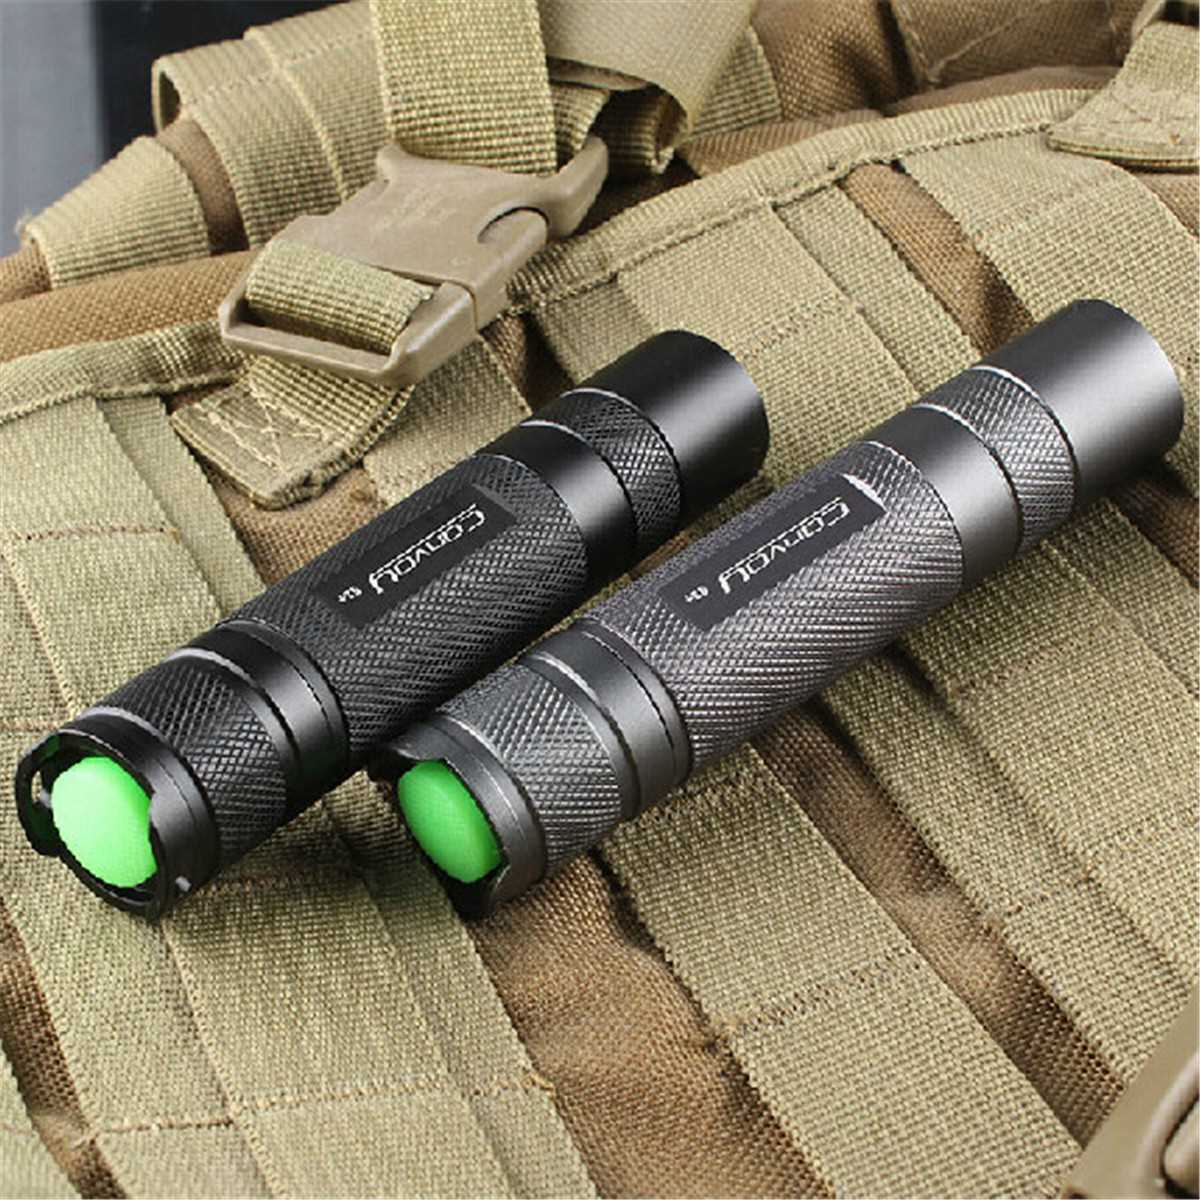 Convoy S2+Aluminum alloy Grey 2 7135x8 3/5Modes EDC LED Flashlight Torch by 18650 battery For Camping Hiking new gray convoy aluminum alloy c8 2 7135x8 3 5 modes smo integrated head led torch flashlight tail cap switch for camping